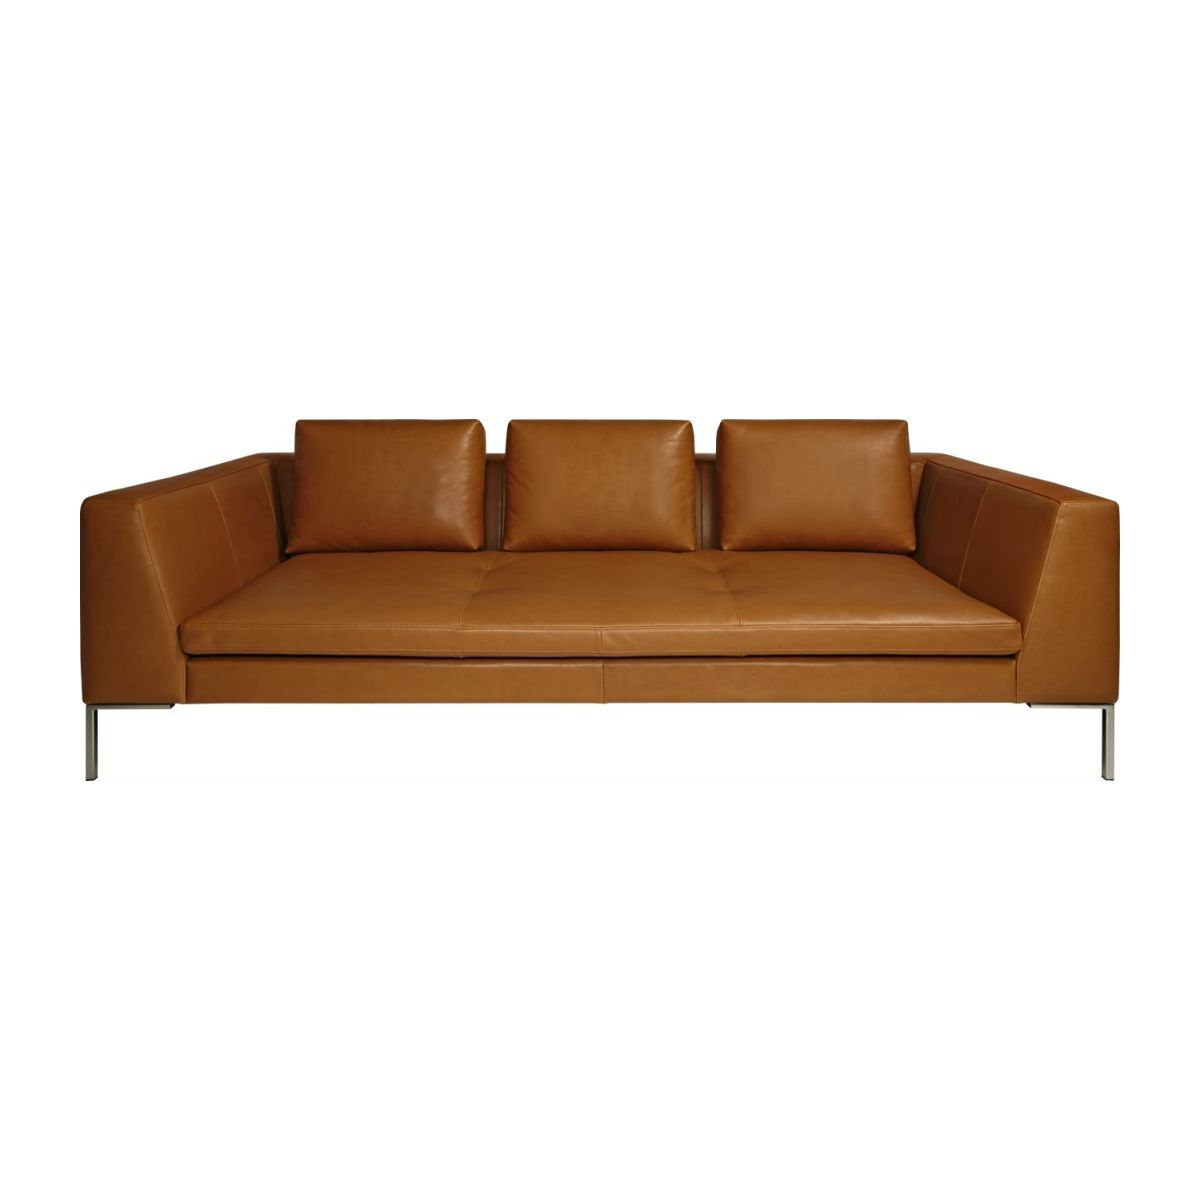 3-Sitzer Sofa aus Anilinleder Vintage Leather old chestnut n°3